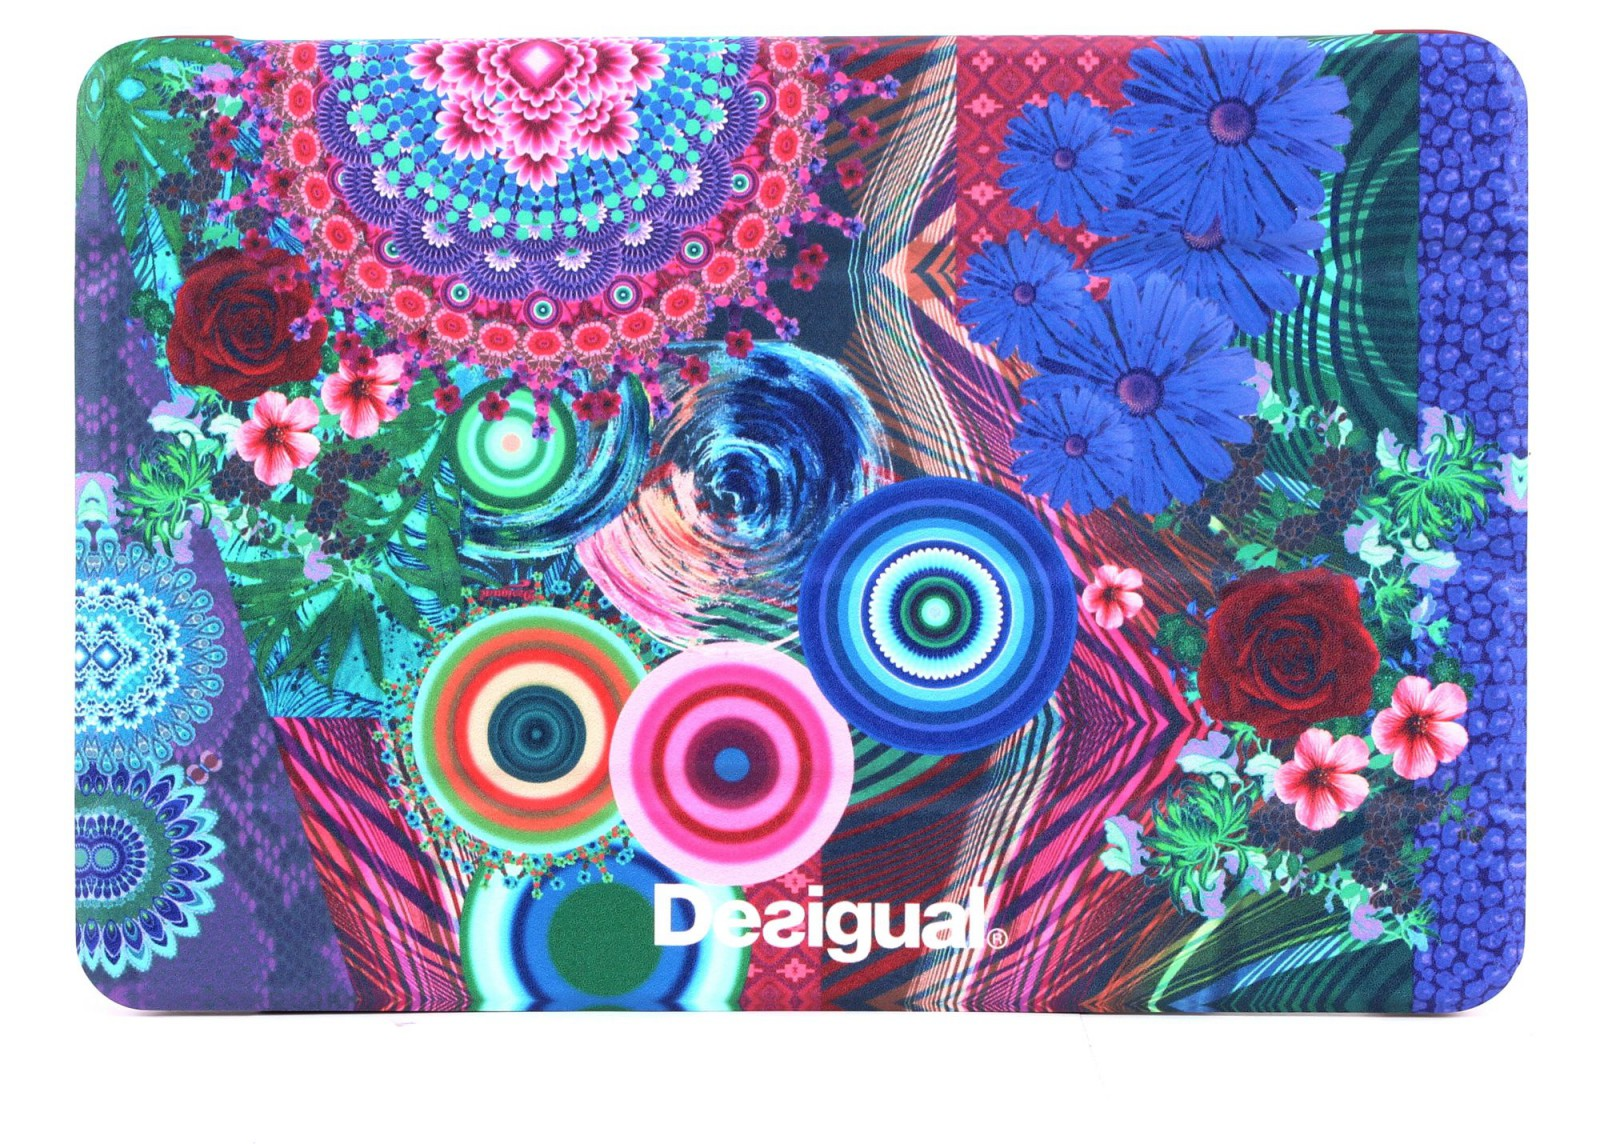 desigual mini ipad compartible 5 etui h lle tablet case. Black Bedroom Furniture Sets. Home Design Ideas